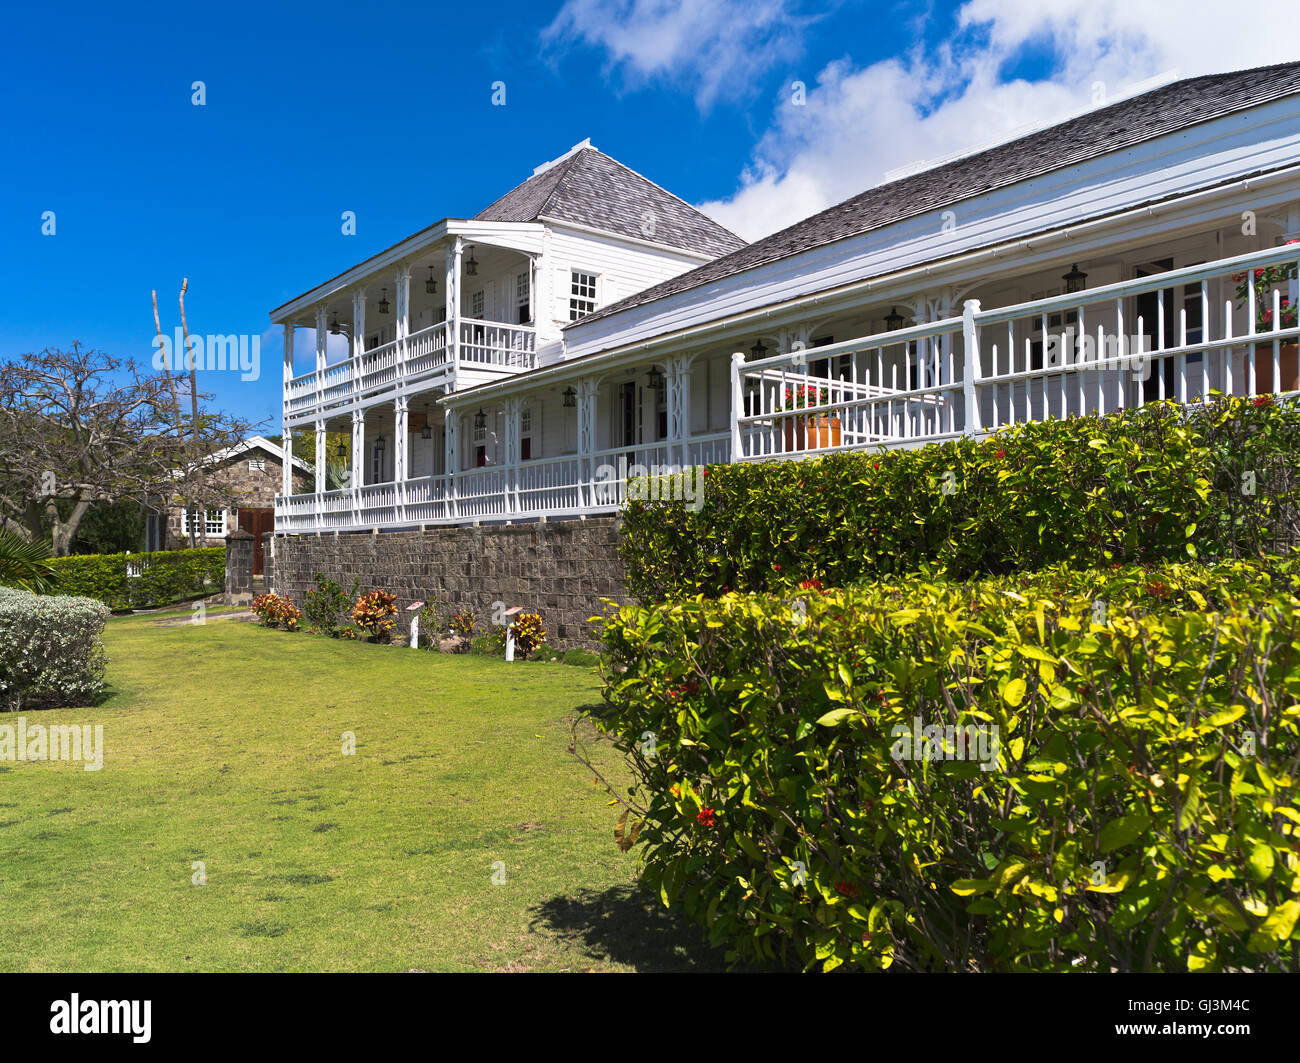 Dh Fairview Great House ST KITTS CARIBBEAN Old Colonial Museum Nelsons Garden Exterior Gardens Nobody